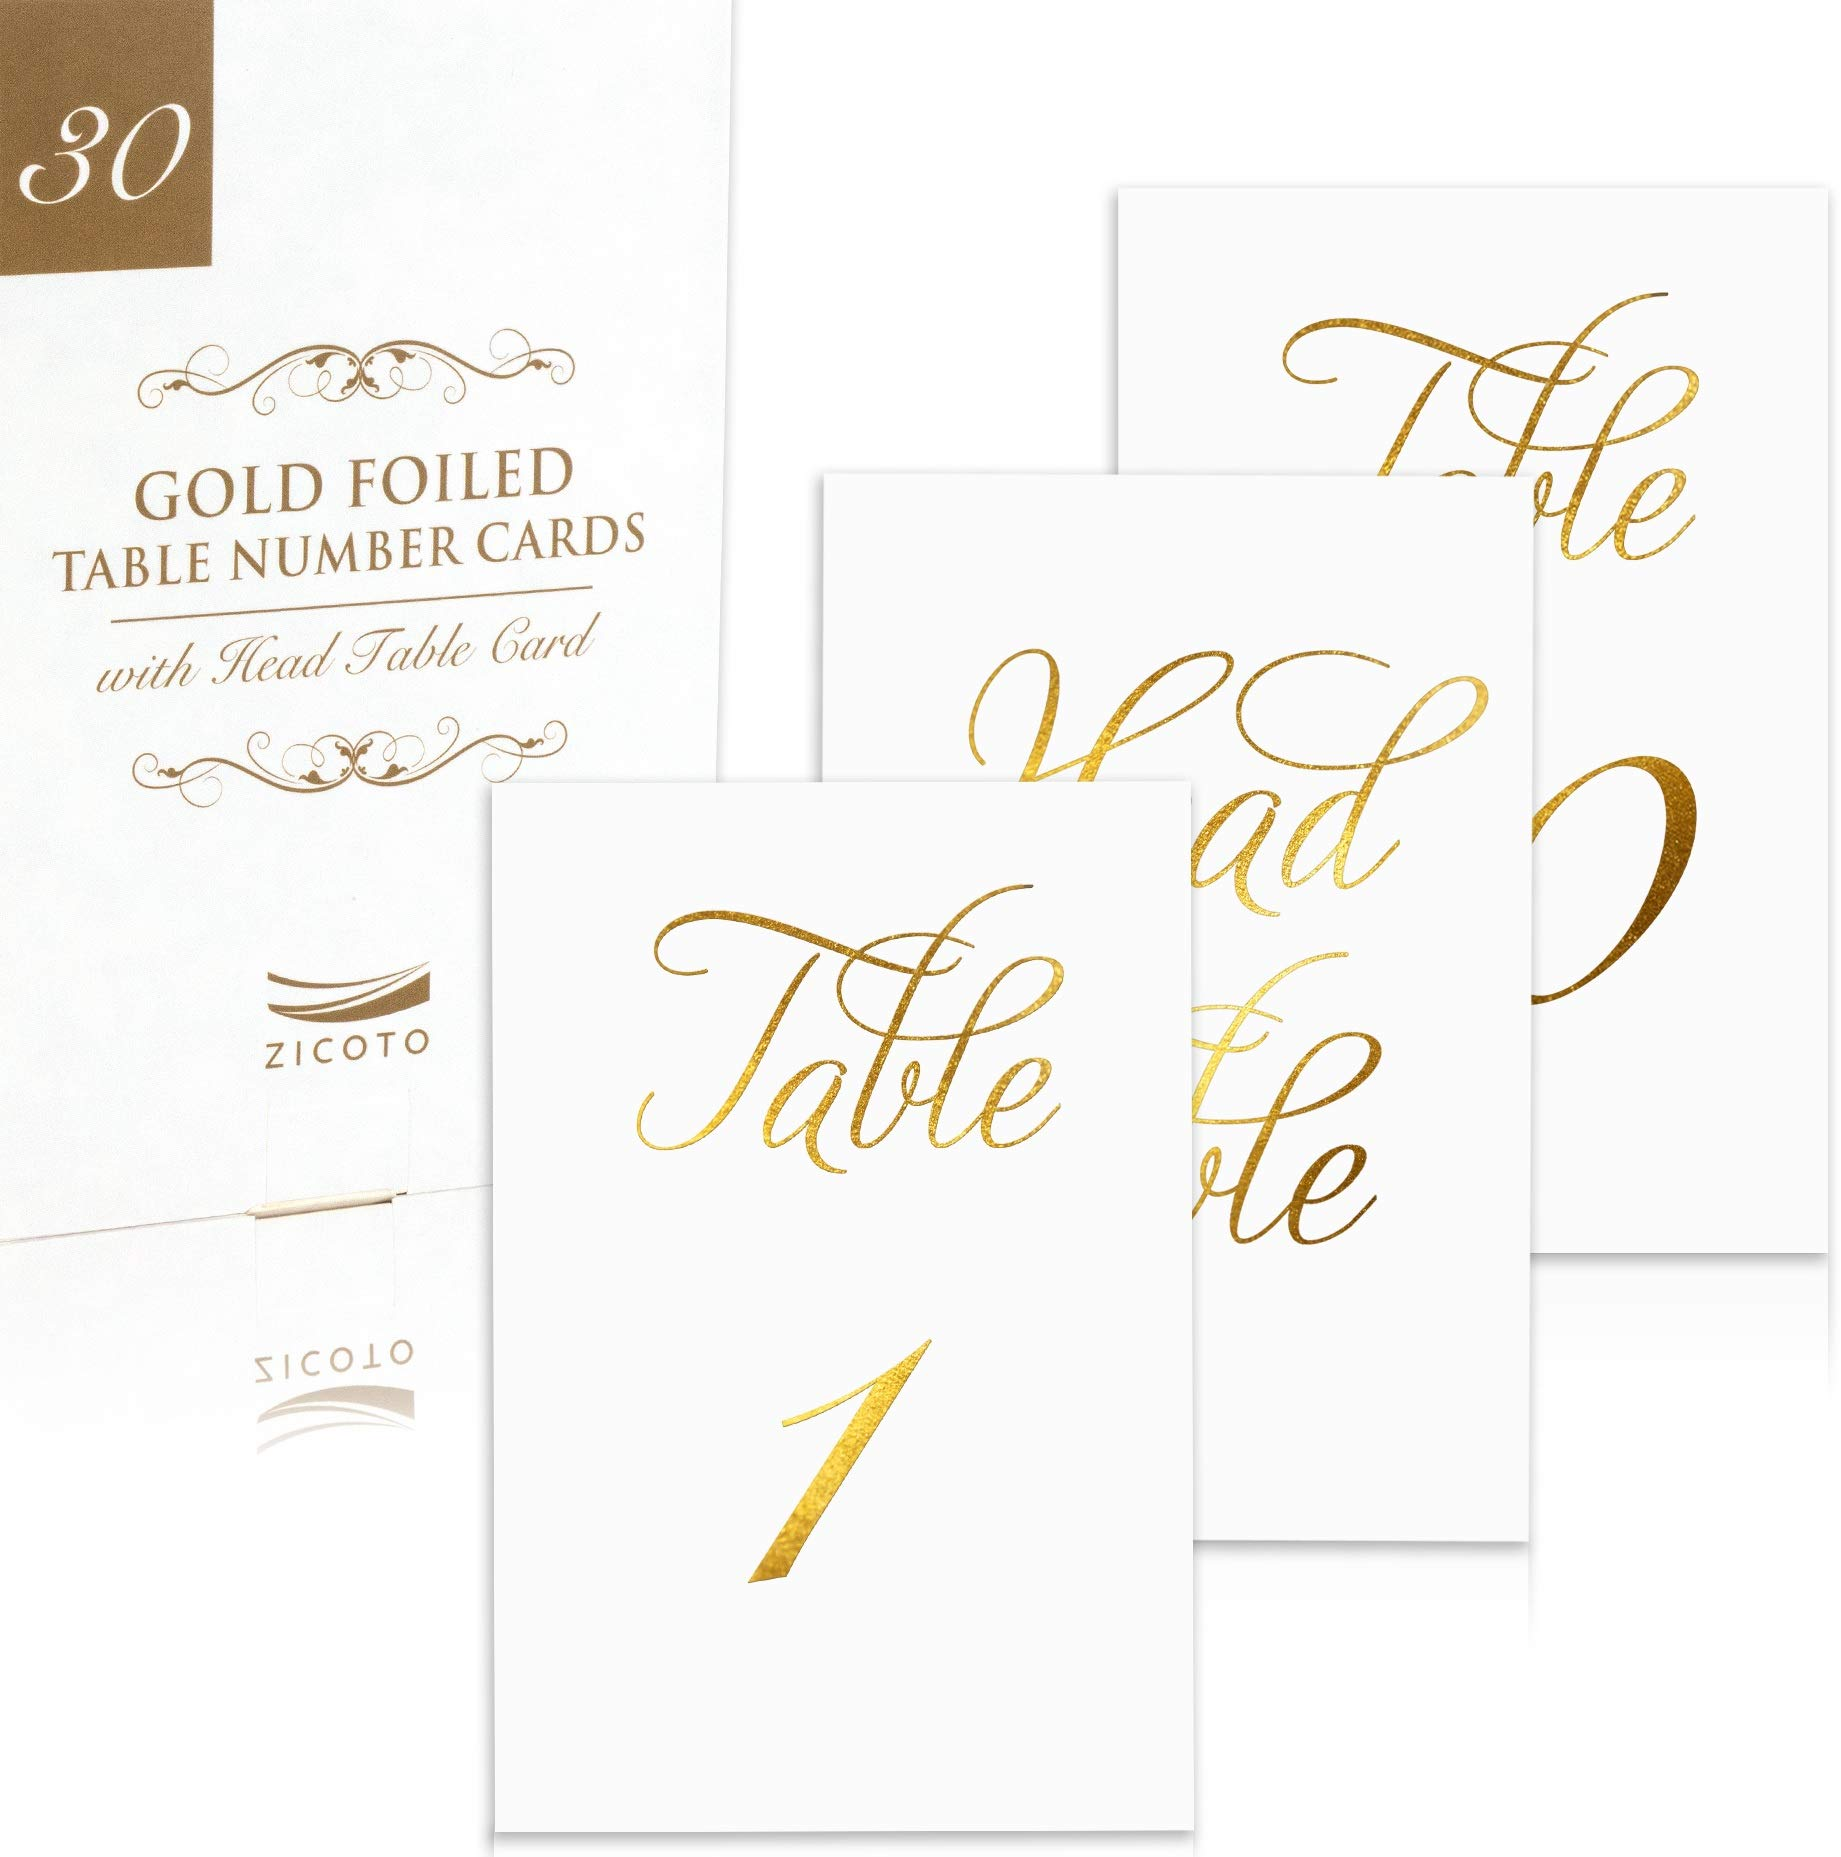 Classy Gold Wedding Table Numbers in Double Sided Gold Foil Lettering with Head Table Card - 4 x 6 inches and Numbered 1-30 - Perfect for Weddings and Events